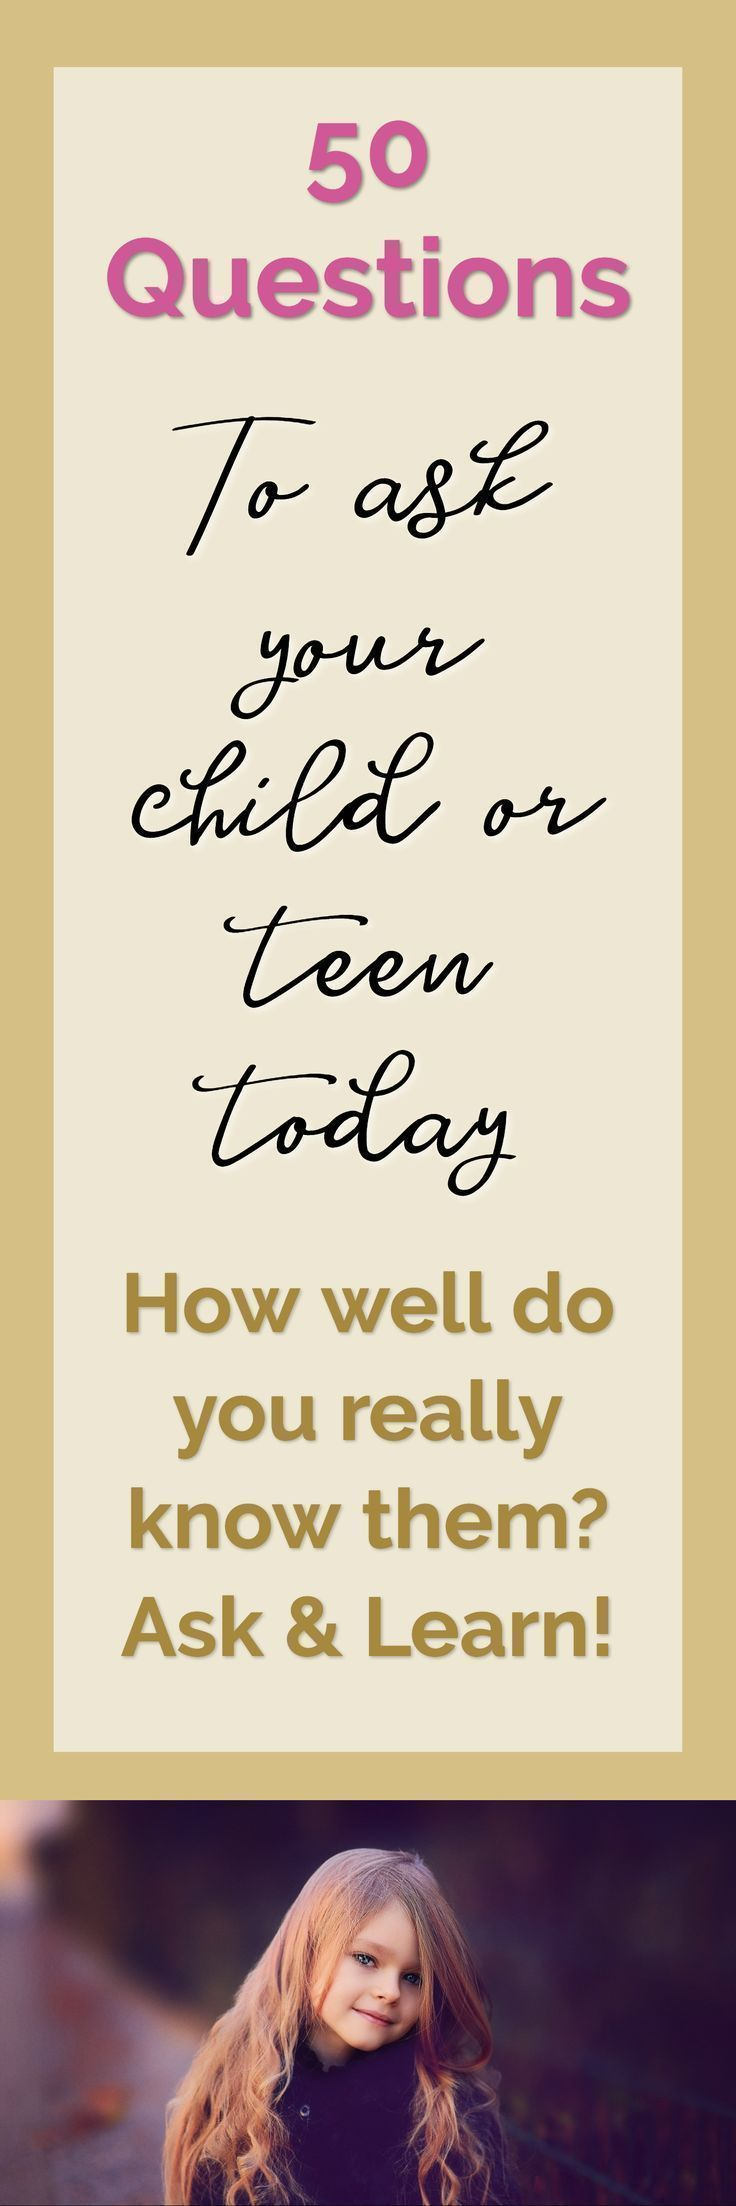 50 Questions To Ask Your Child Or Teen Today   Positive parenting   Quotes for kids   Happy Children   Mommyhood   Tips for moms   Mom advice   Build Resilience   How to raise Confident Kids #teenparentingadvice #parentingteens #parentingadvicequotes